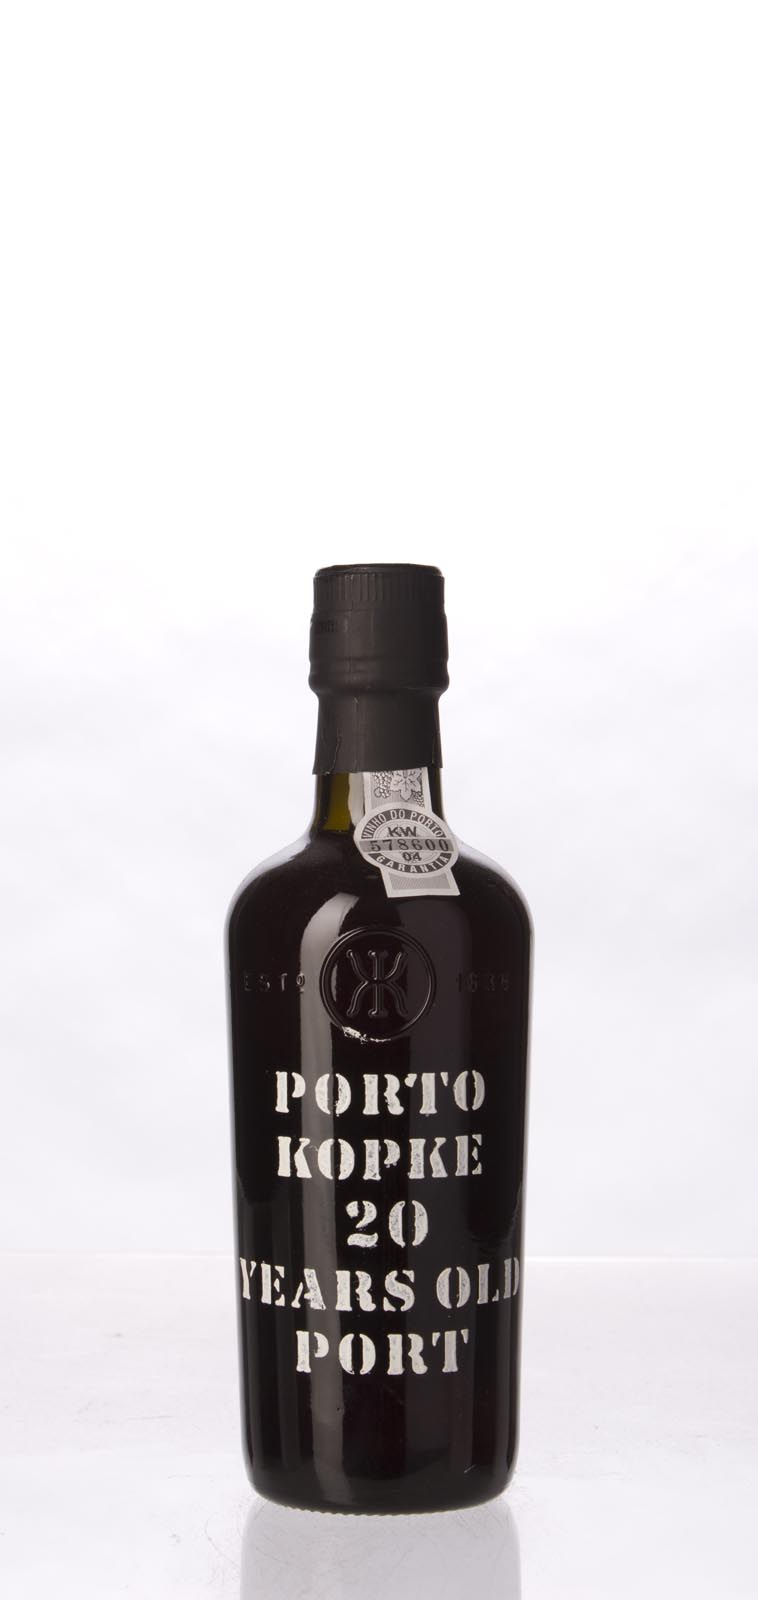 Kopke 20 Year Old Tawny Port N.V., 375ml (RH93) from The BPW - Merchants of rare and fine wines.